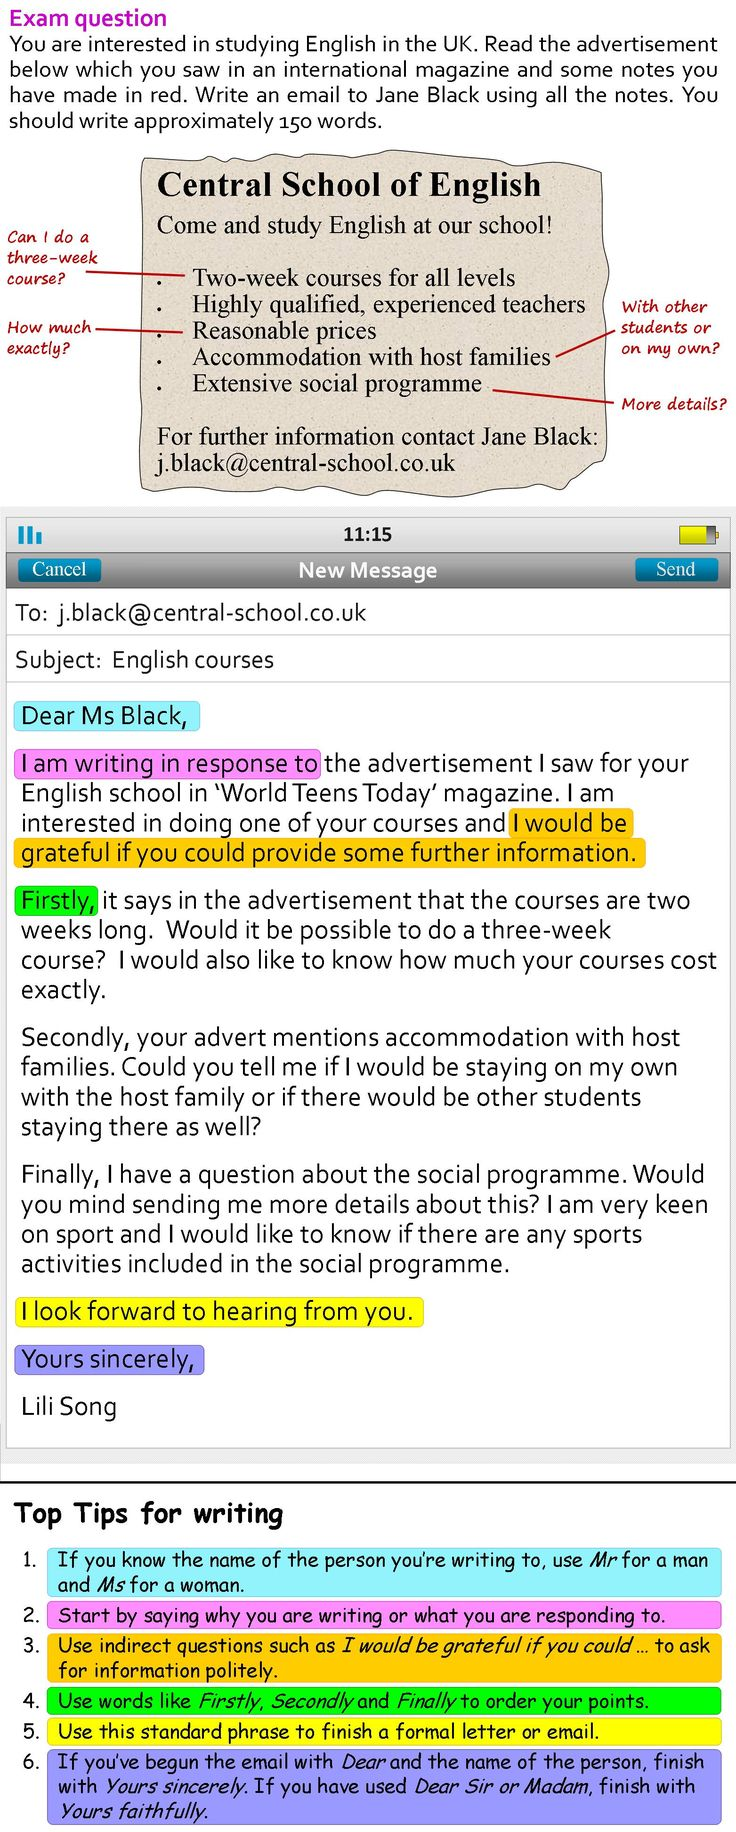 A more formal email -  http://learnenglishteens.britishcouncil.org/skills/writing-skills-practice/more-formal-email?utm_source=facebook&utm_medium=social&utm_campaign=bc-learnenglishteens